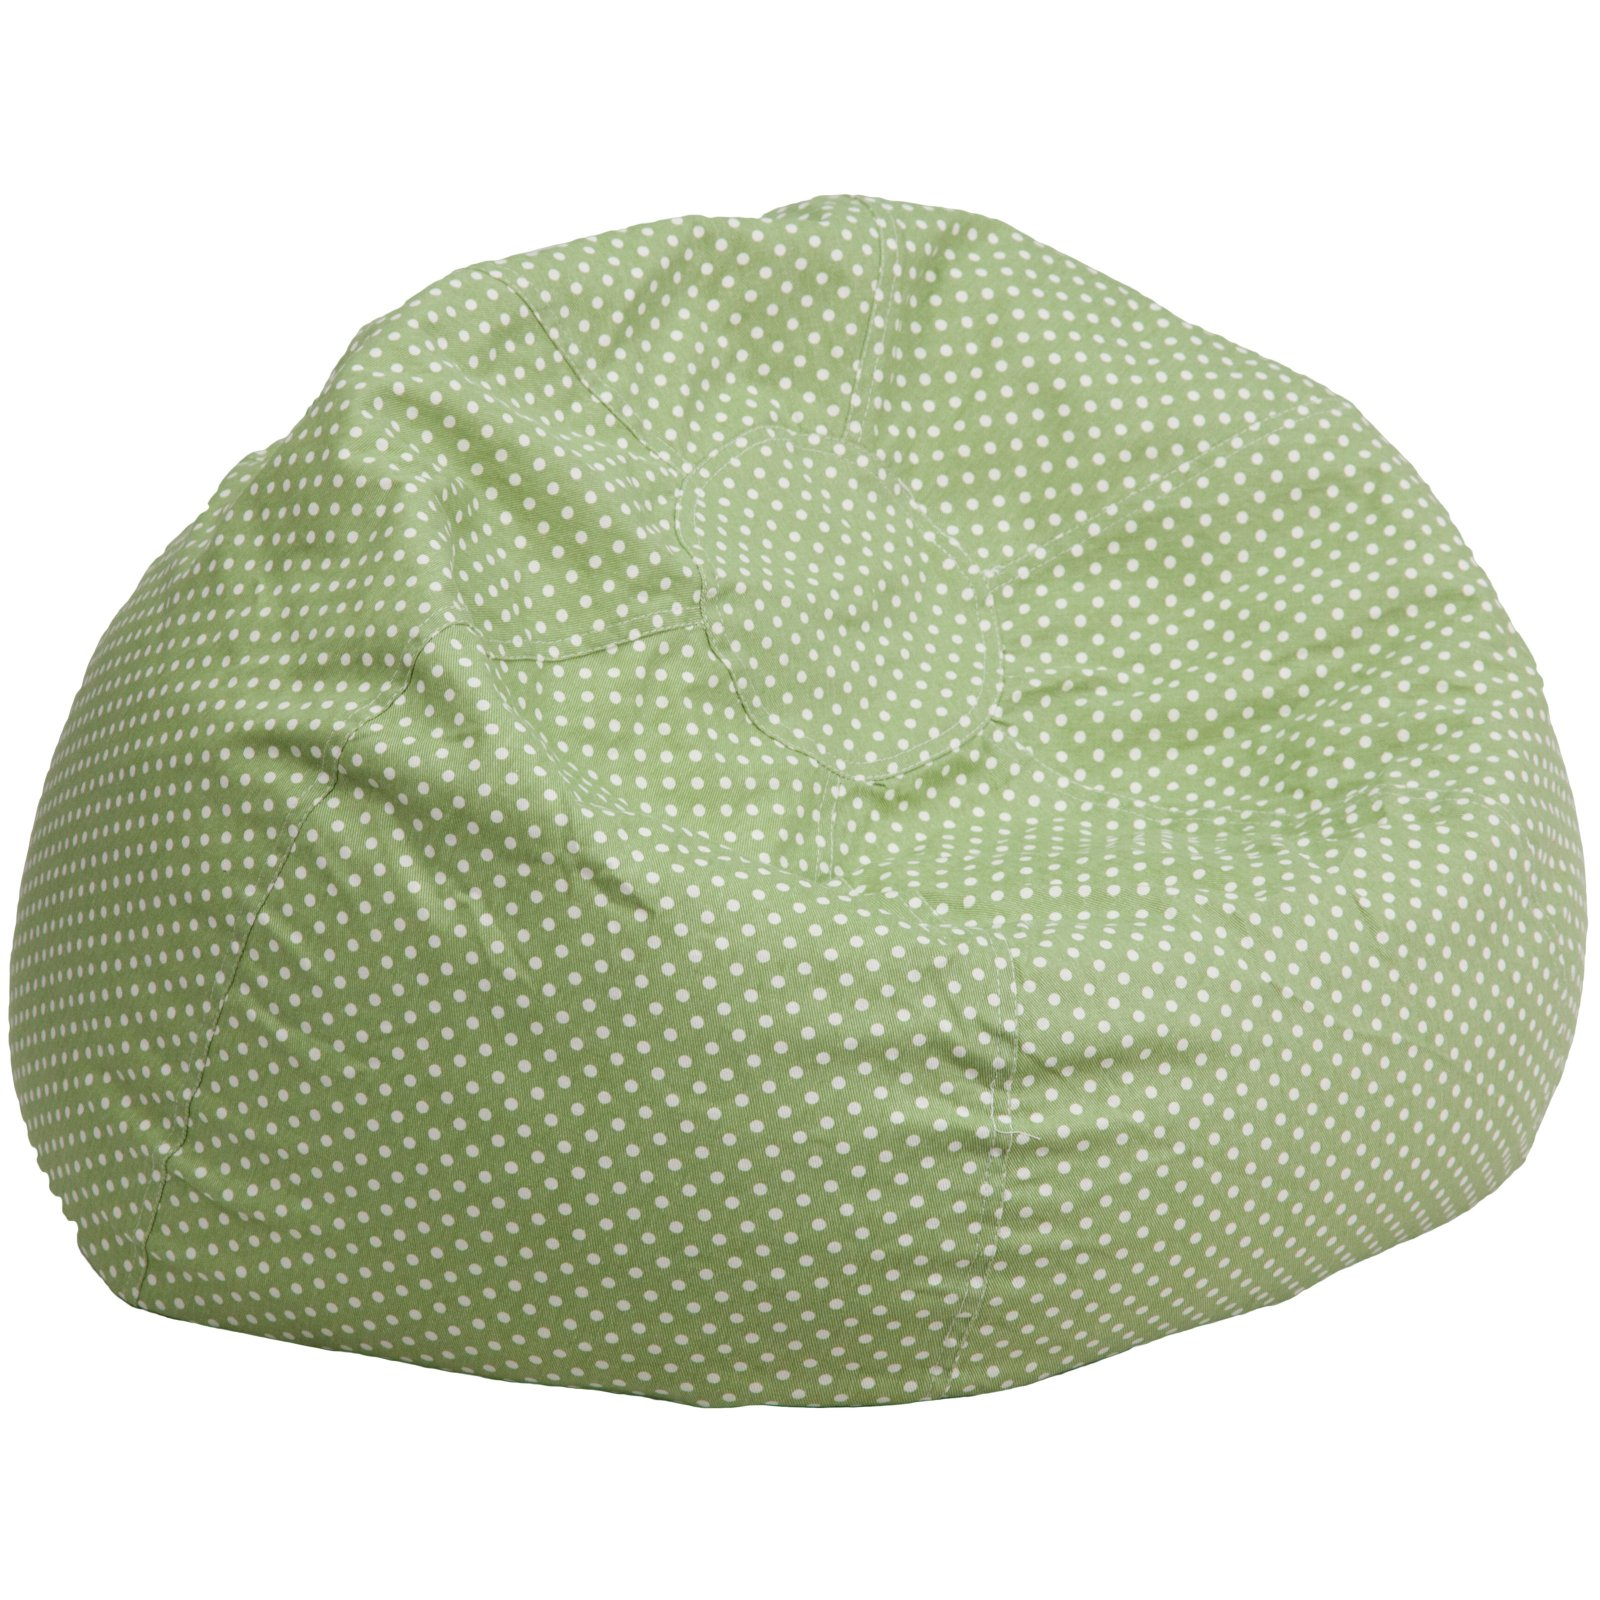 Oversized Polka Dot Bean Bag Chair, Multiple Colors